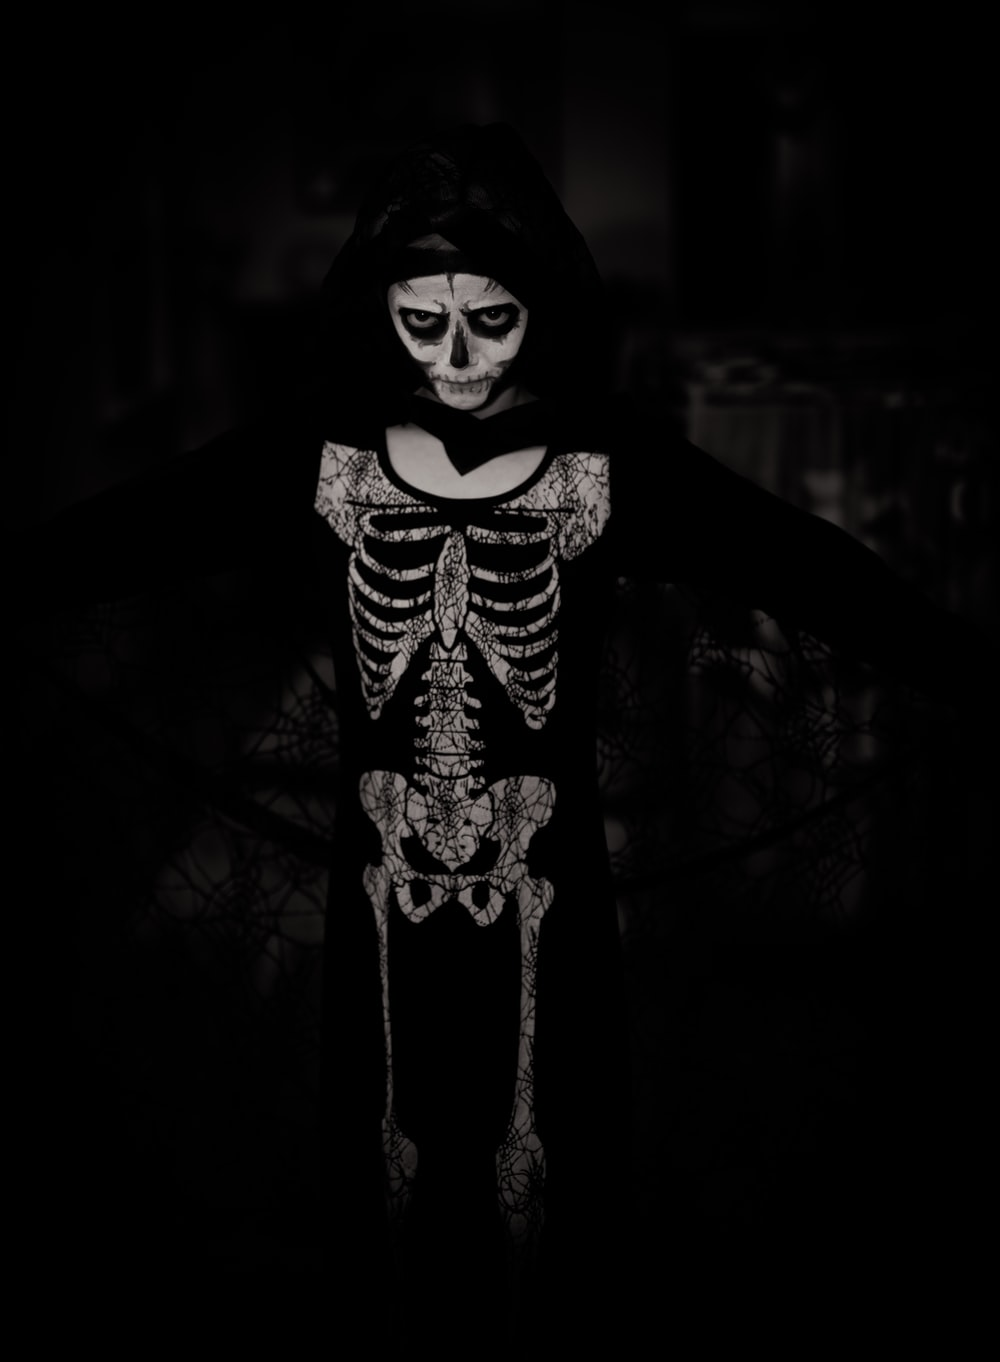 person wearing skeleton costume